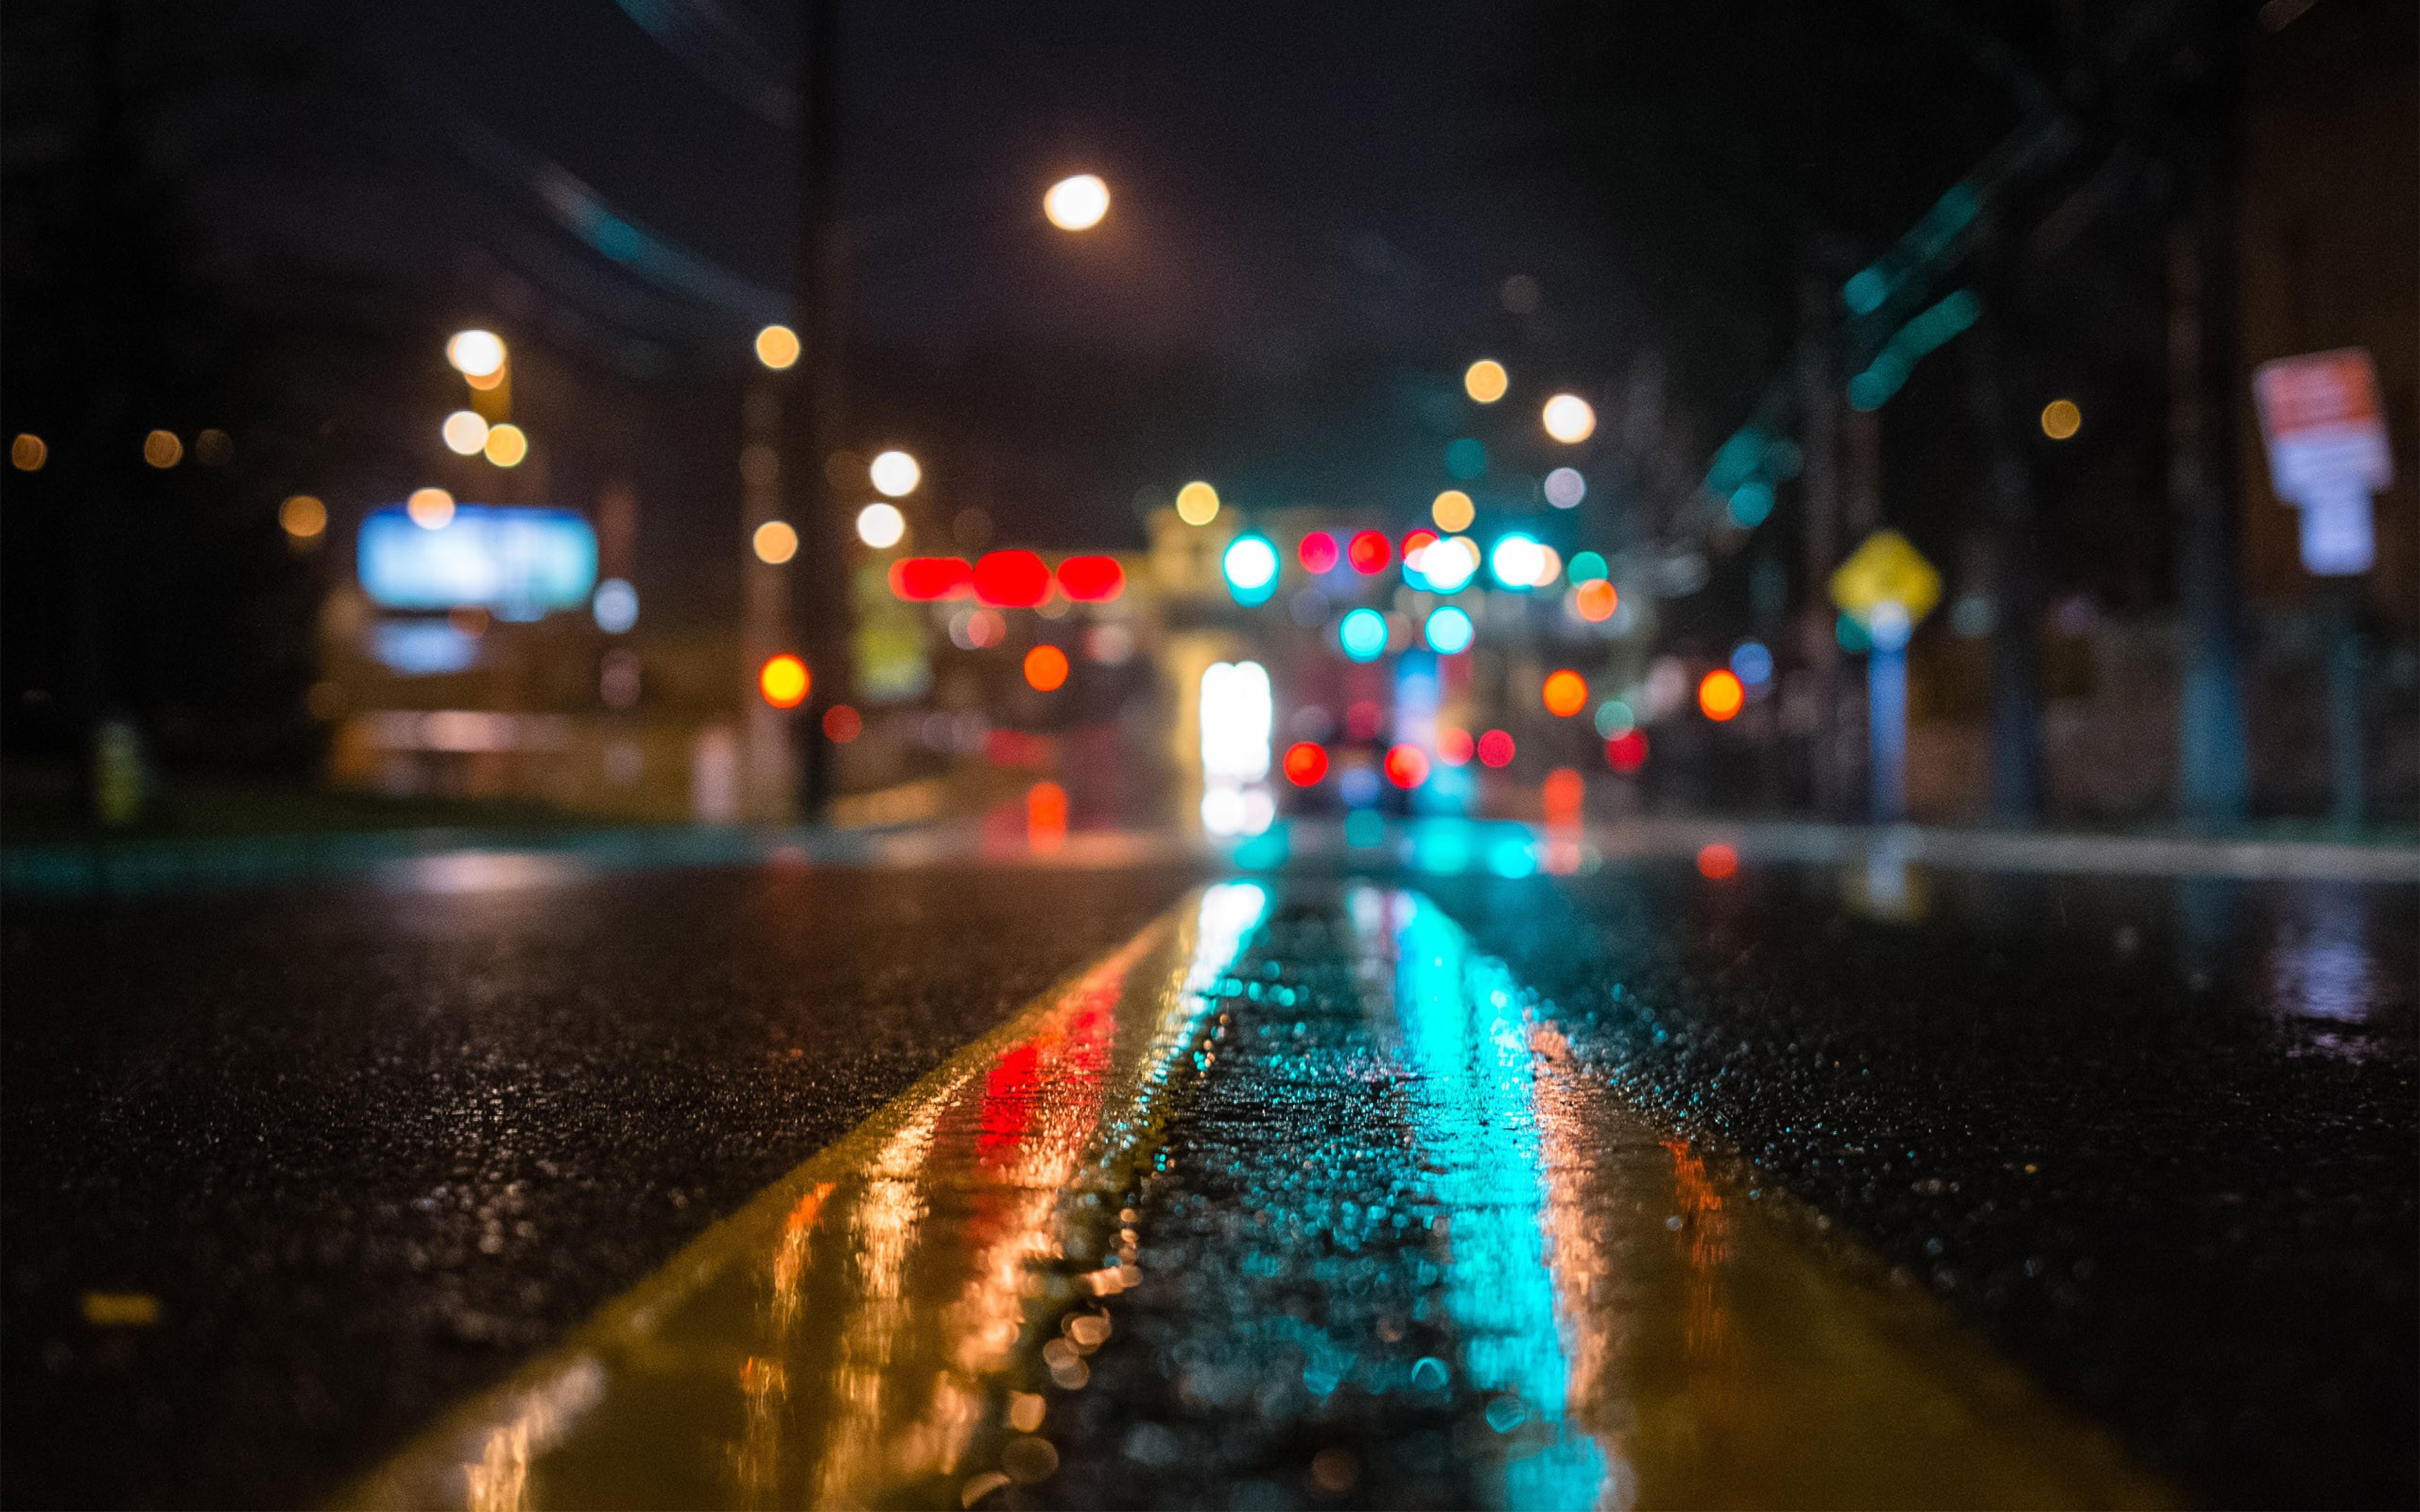 Rain Night Street Picture Background Material Street